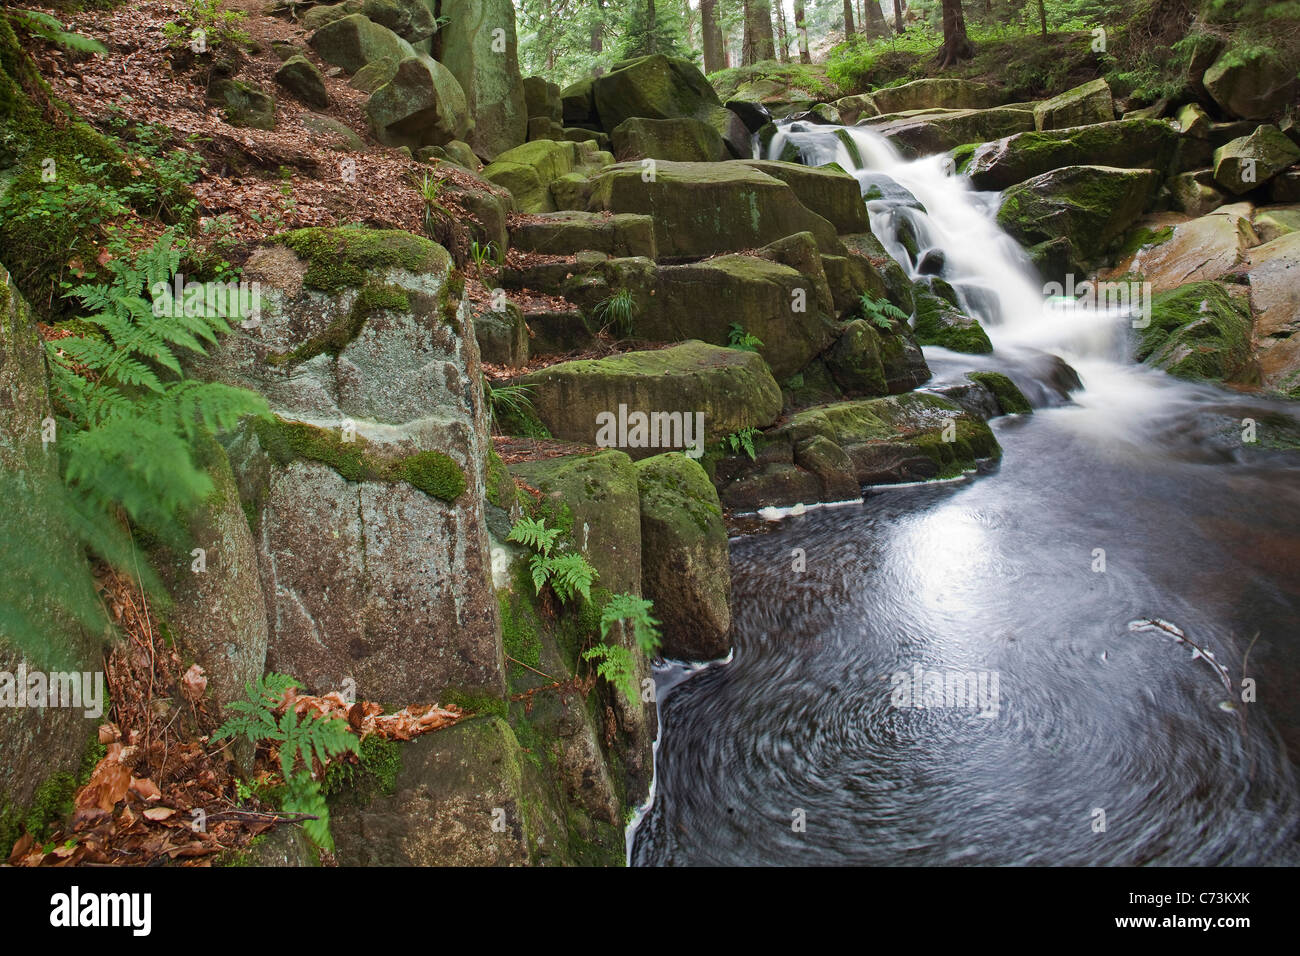 Waterfalls, Ilse mountain stream flowing over mossy rocks, Heinrich Heine walking trail, Harz Mountains, Saxony - Stock Image